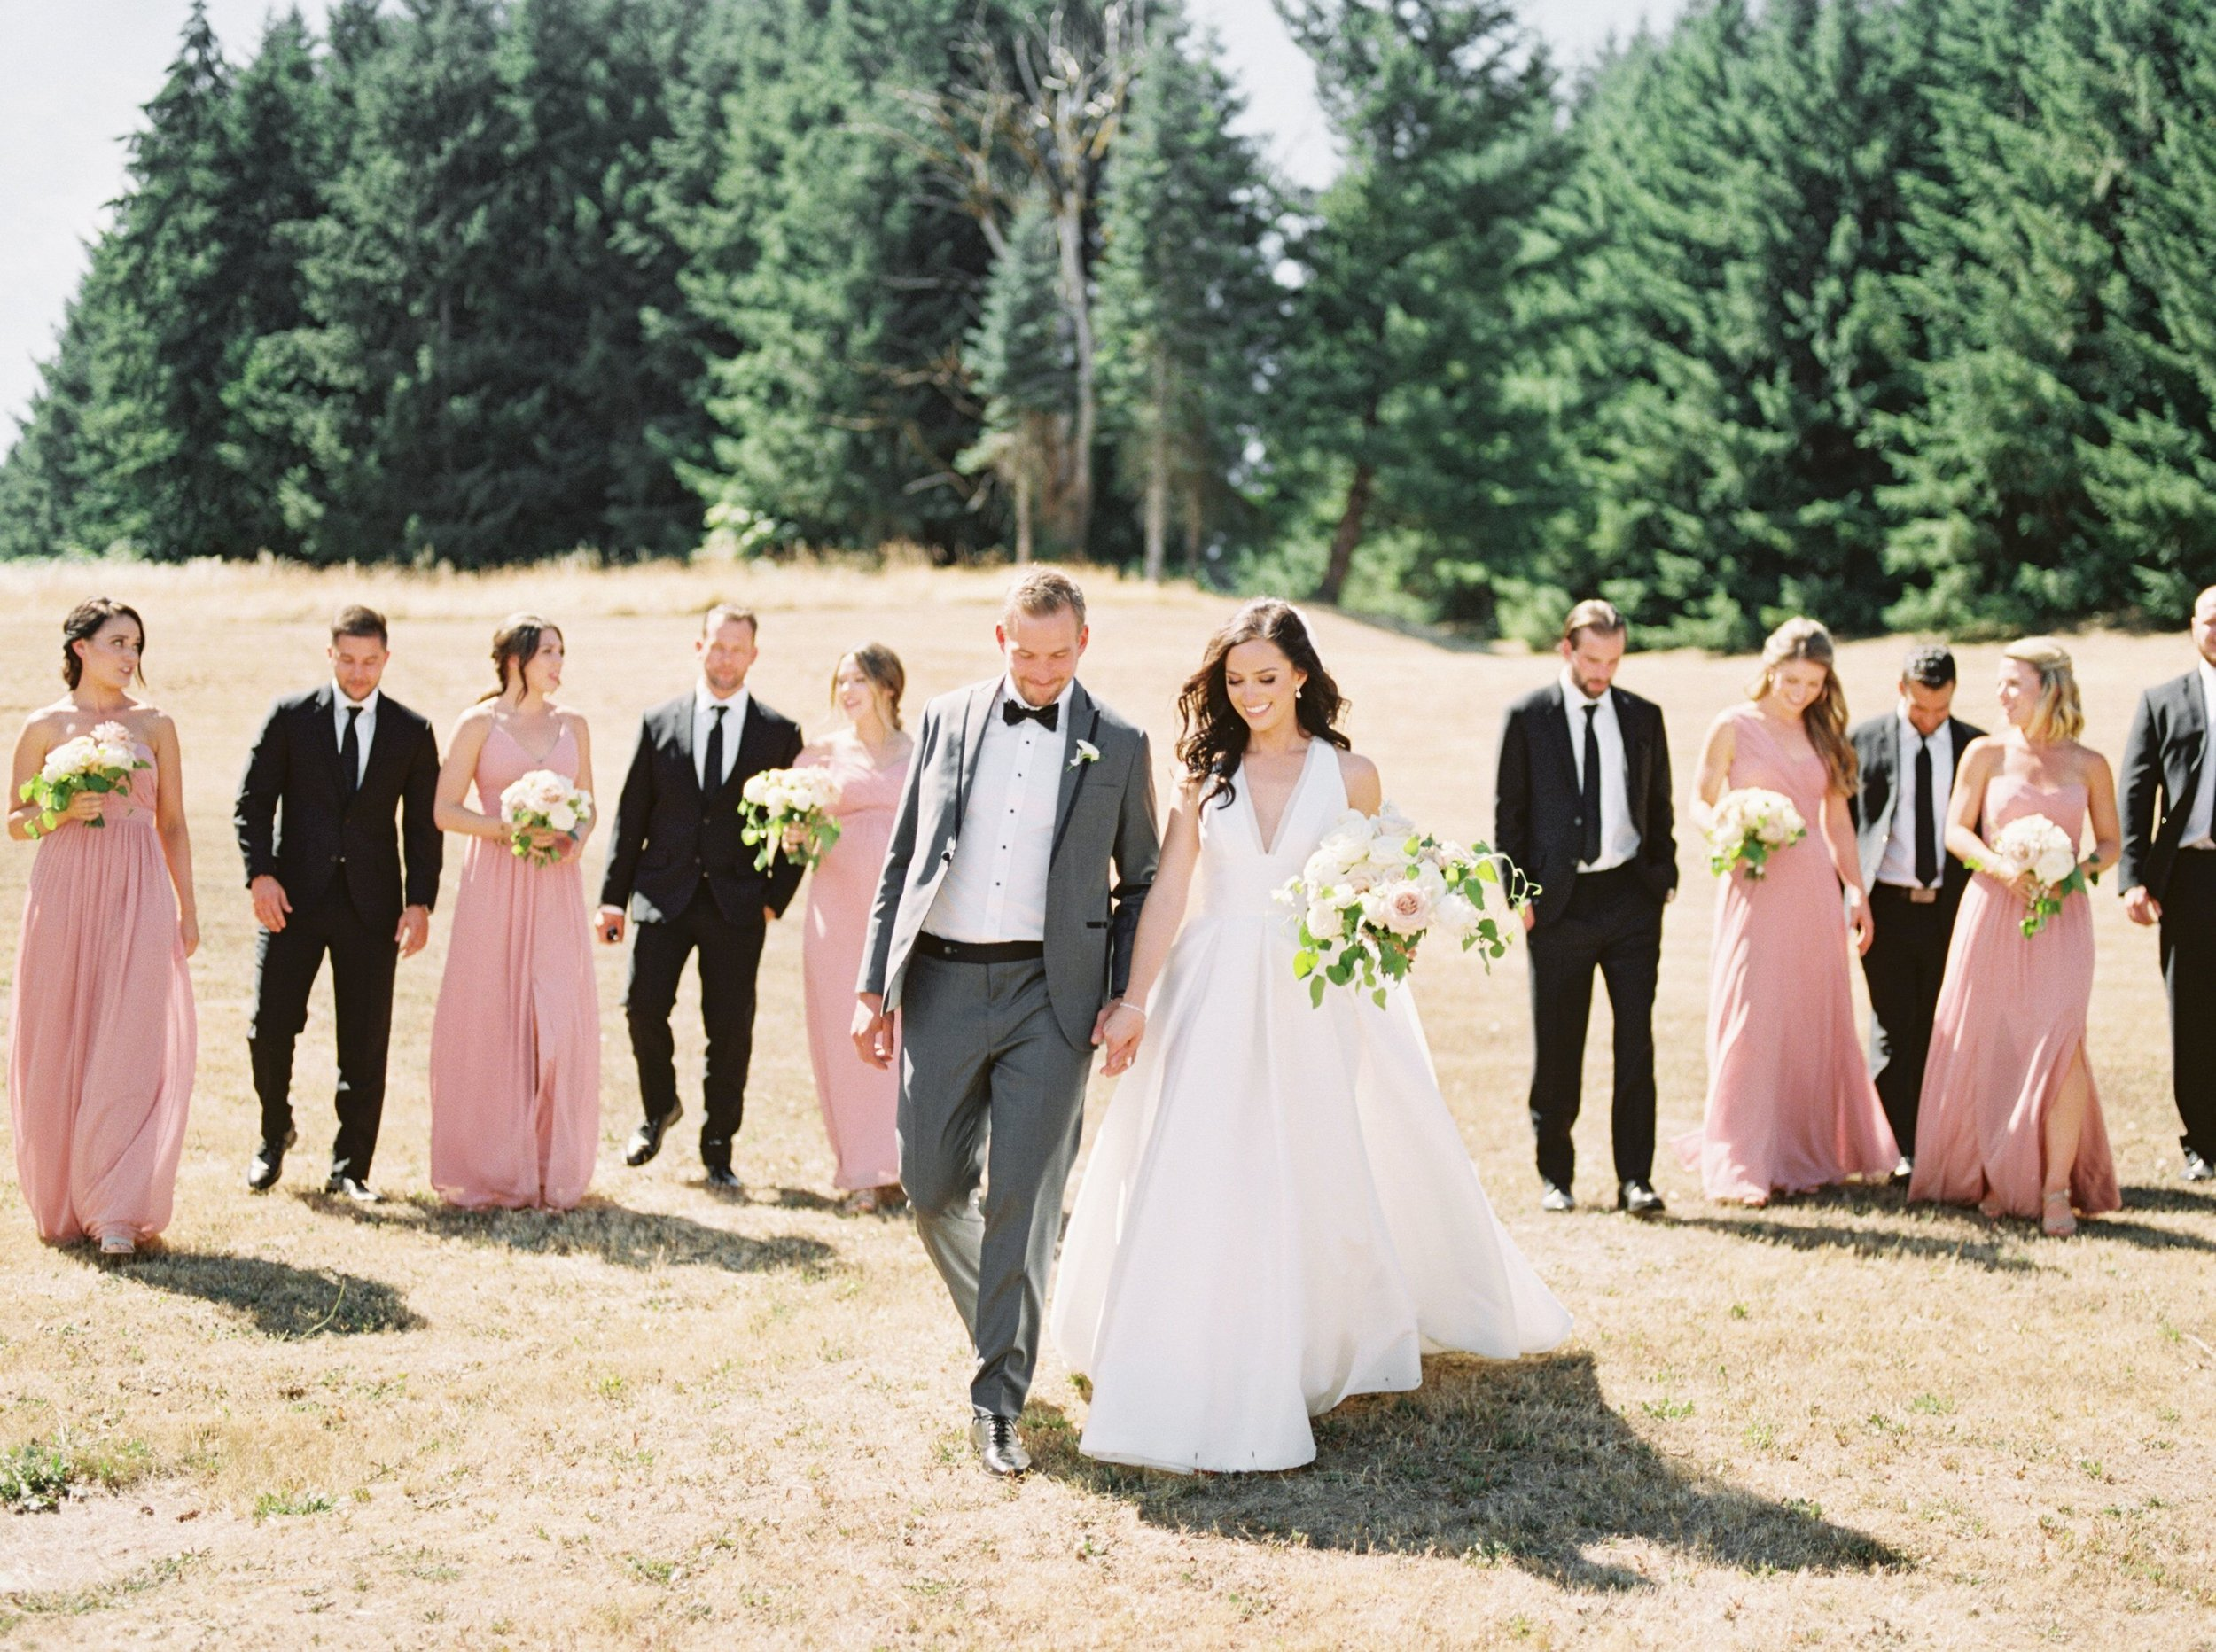 Bridalbliss.com | Portland Wedding | Oregon Event Planning and Design | Amanda K